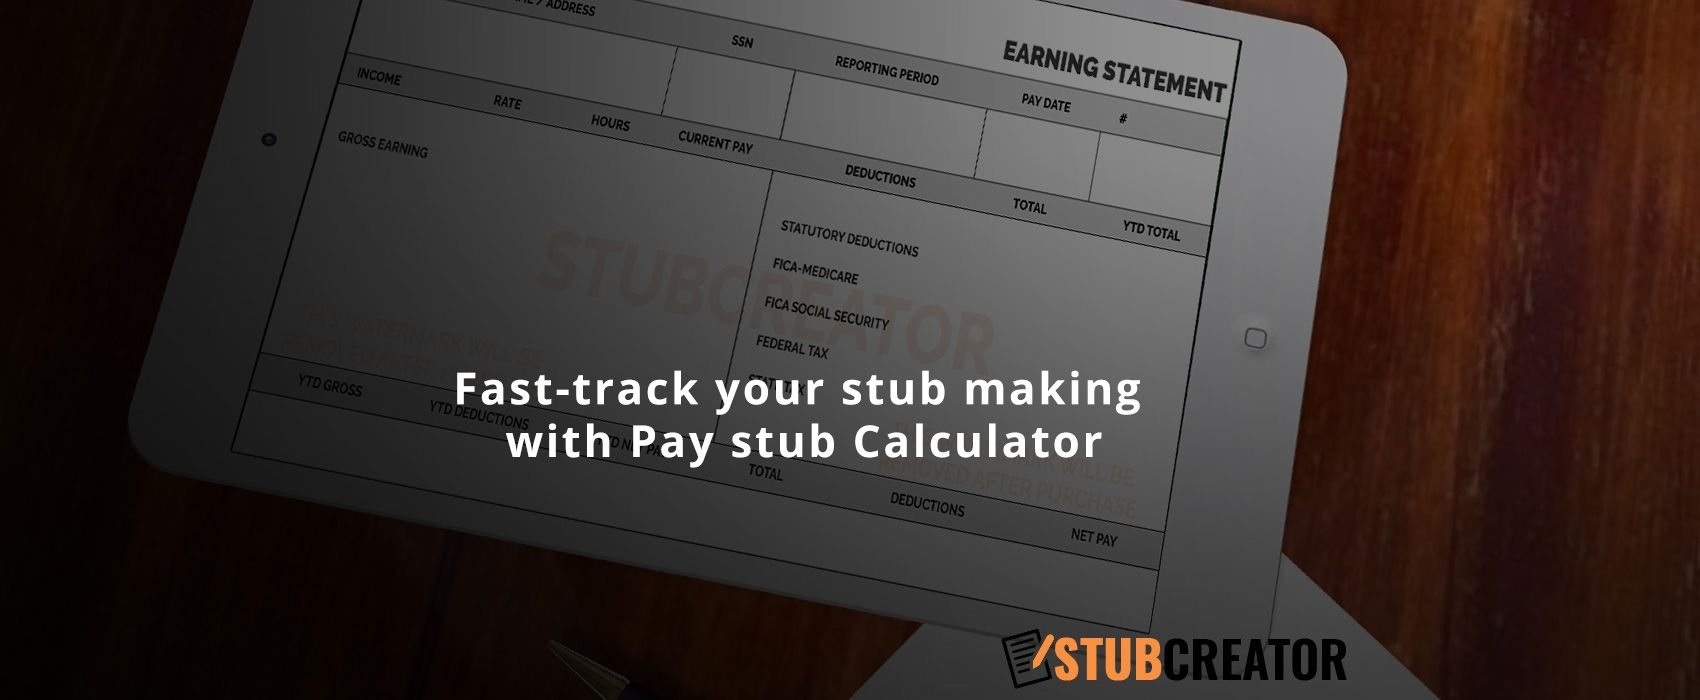 Pay stub calculator is meant for speedingup the process